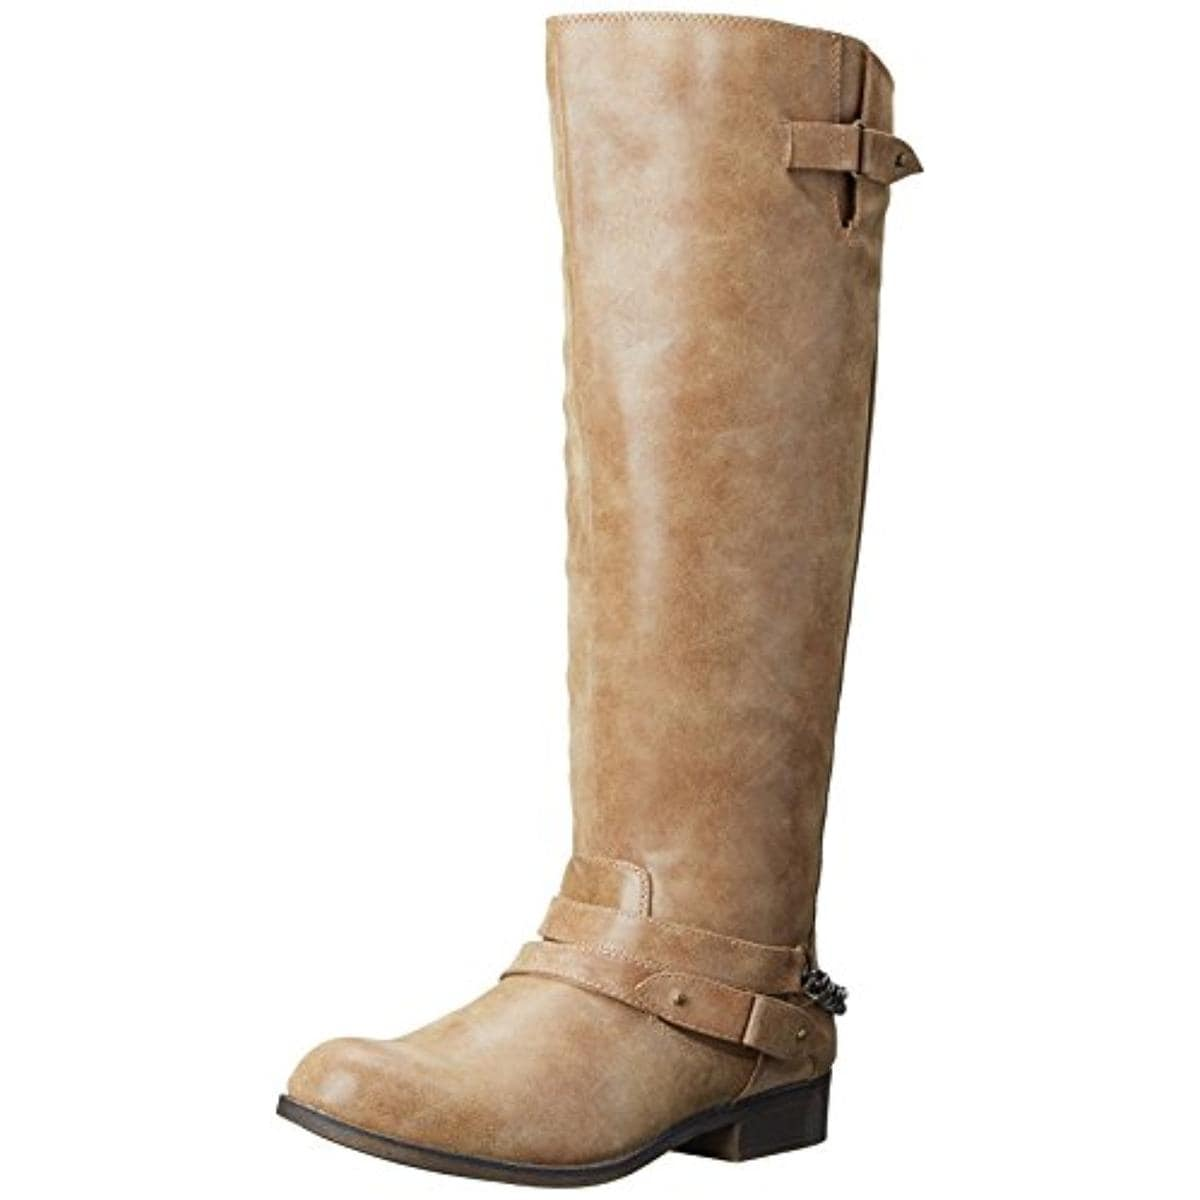 e733044c68f Shop Madden Girl Womens Canyon Riding Boots Faux Leather Wide Calf - Free  Shipping On Orders Over  45 - Overstock - 13936639